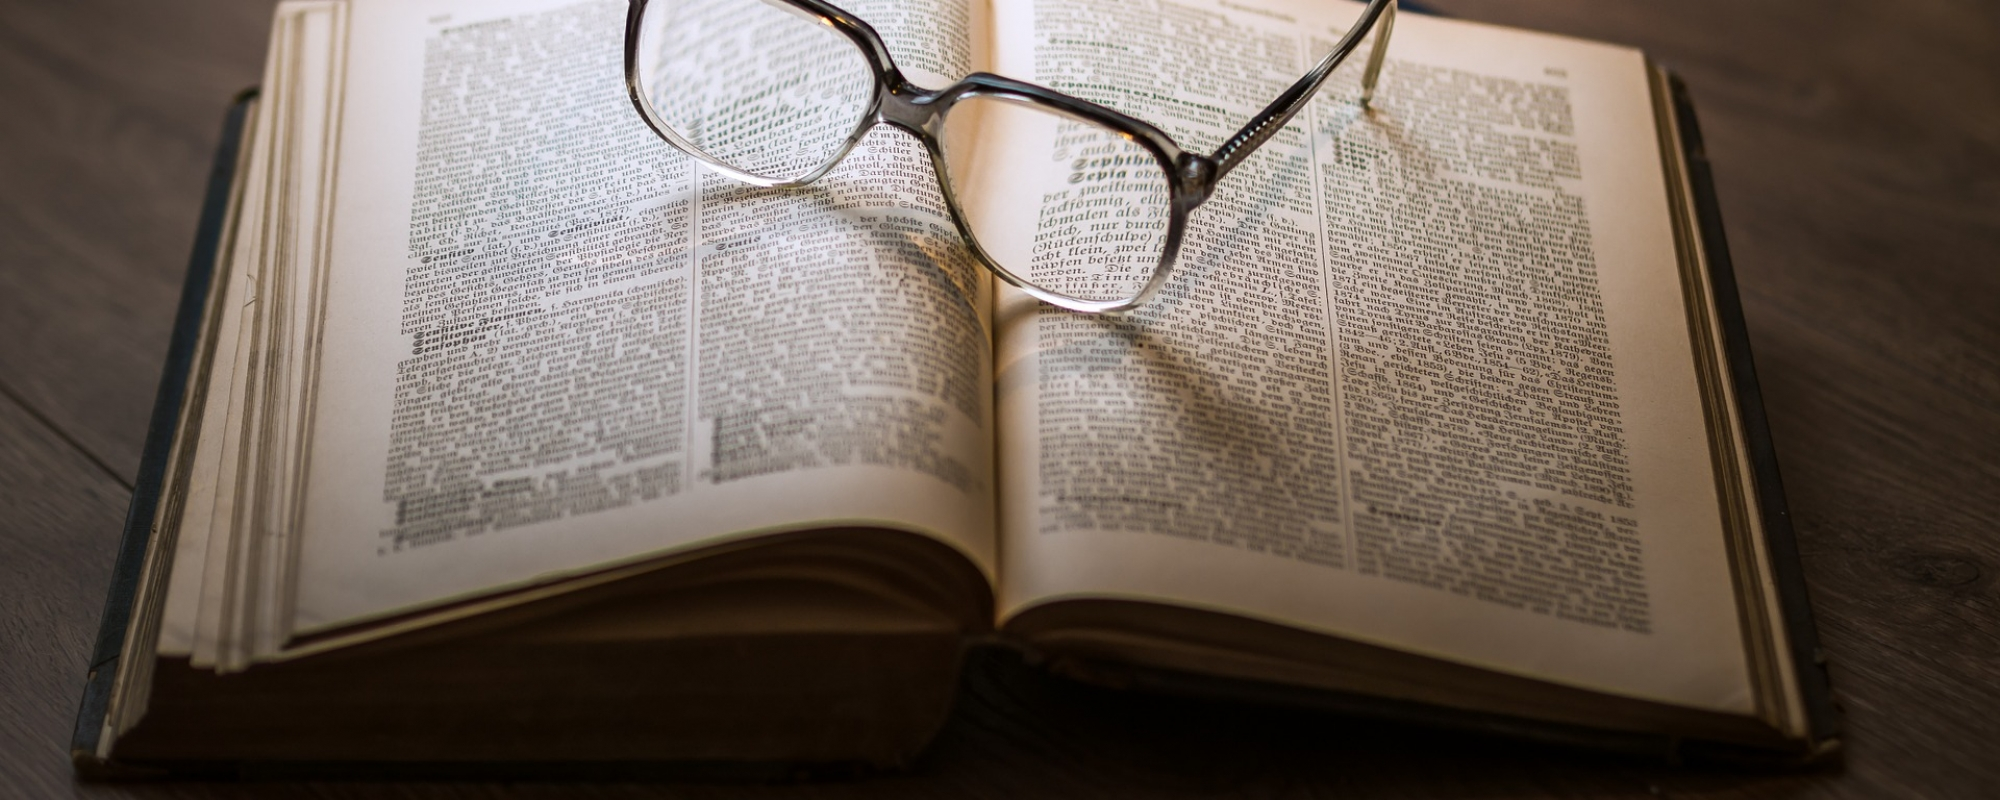 Spectacles on an open book